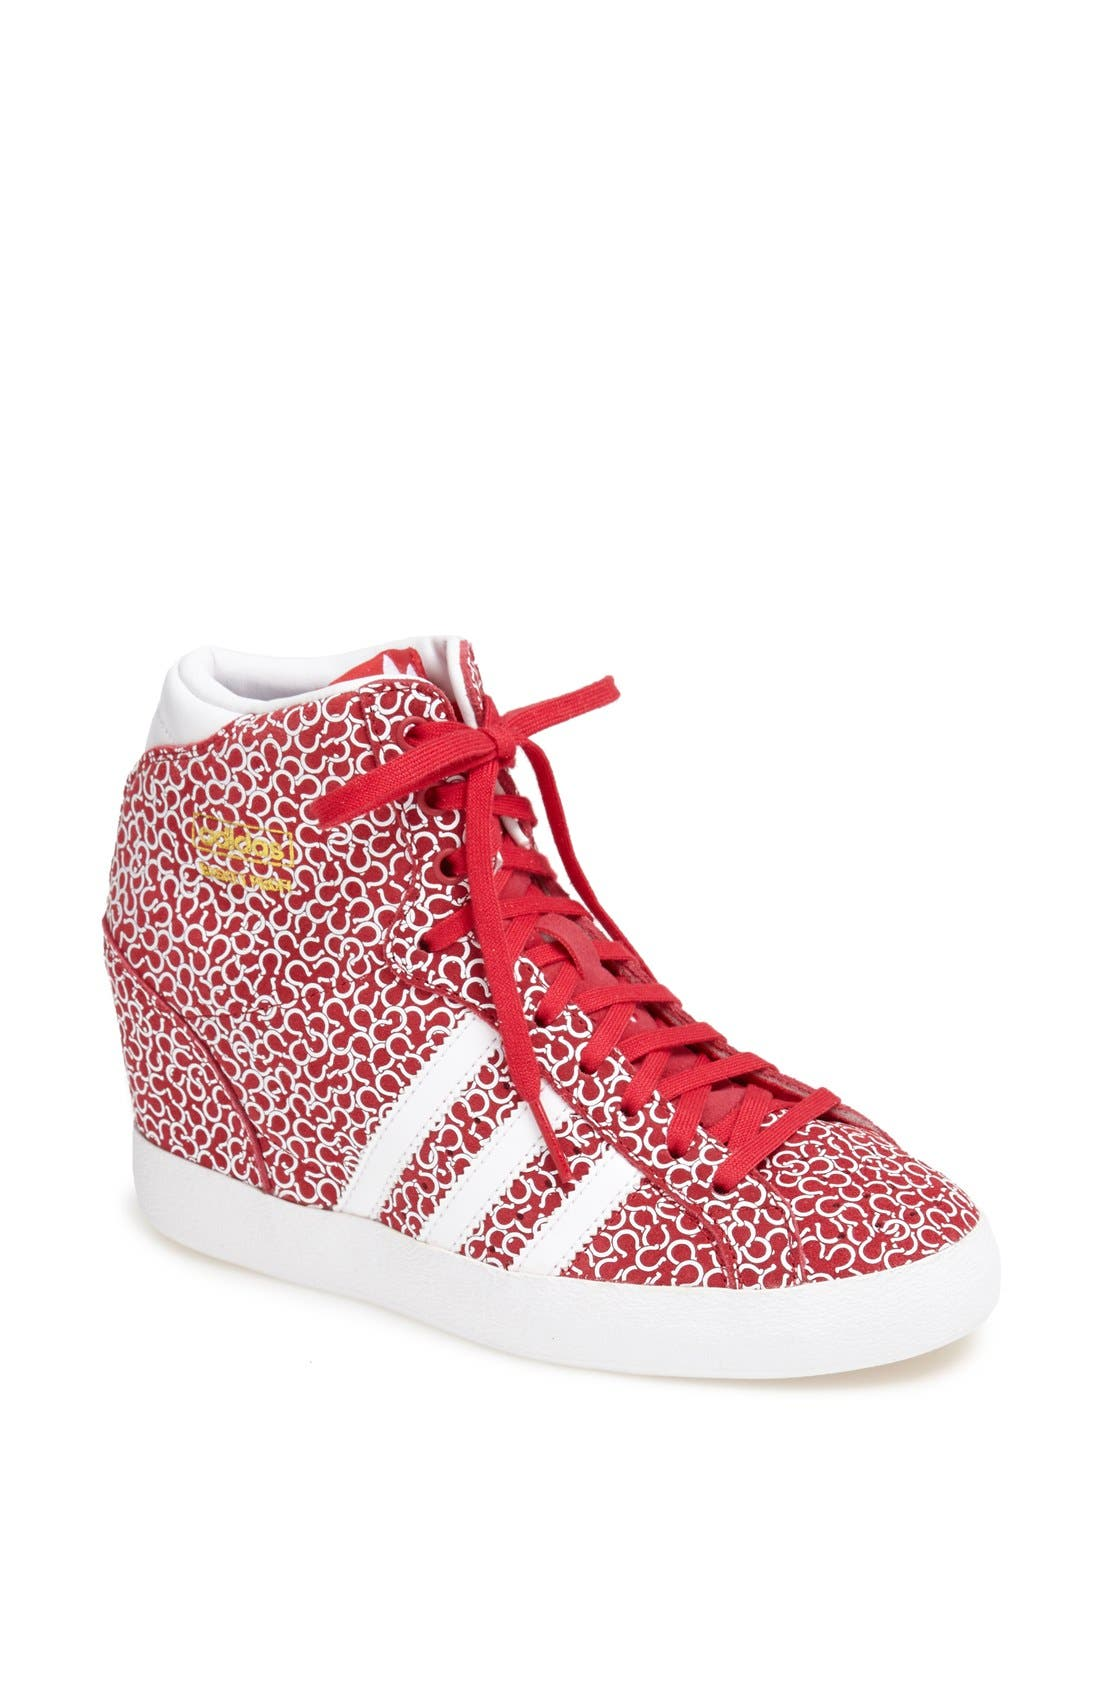 Alternate Image 1 Selected - adidas Hidden Wedge Sneaker (Women)